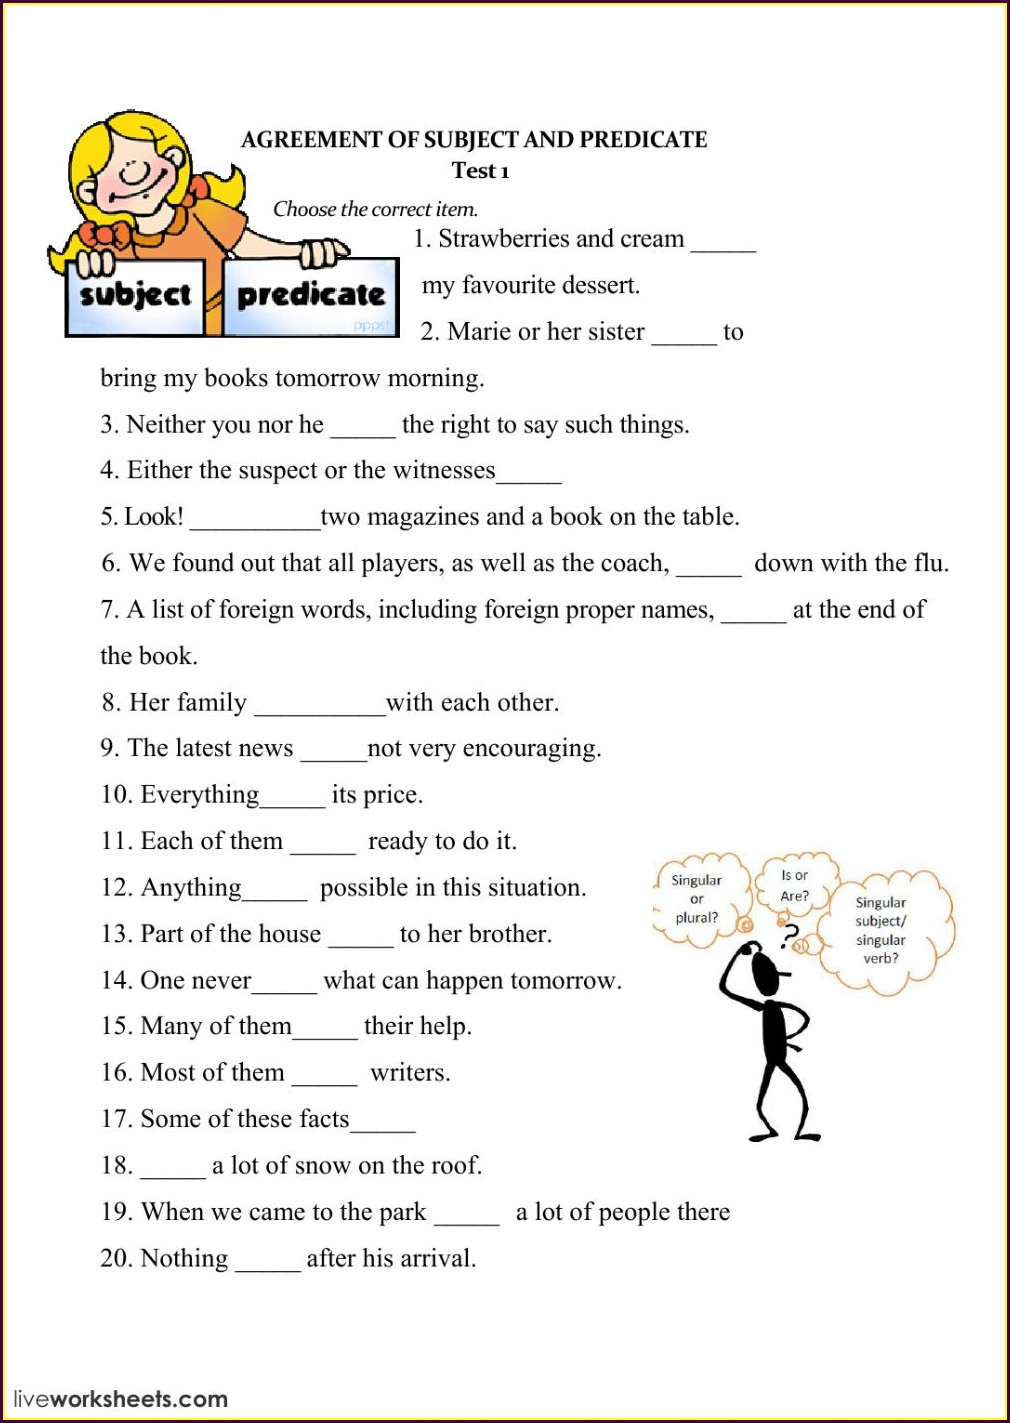 Worksheet On Subject Verb Agreement For Class 5